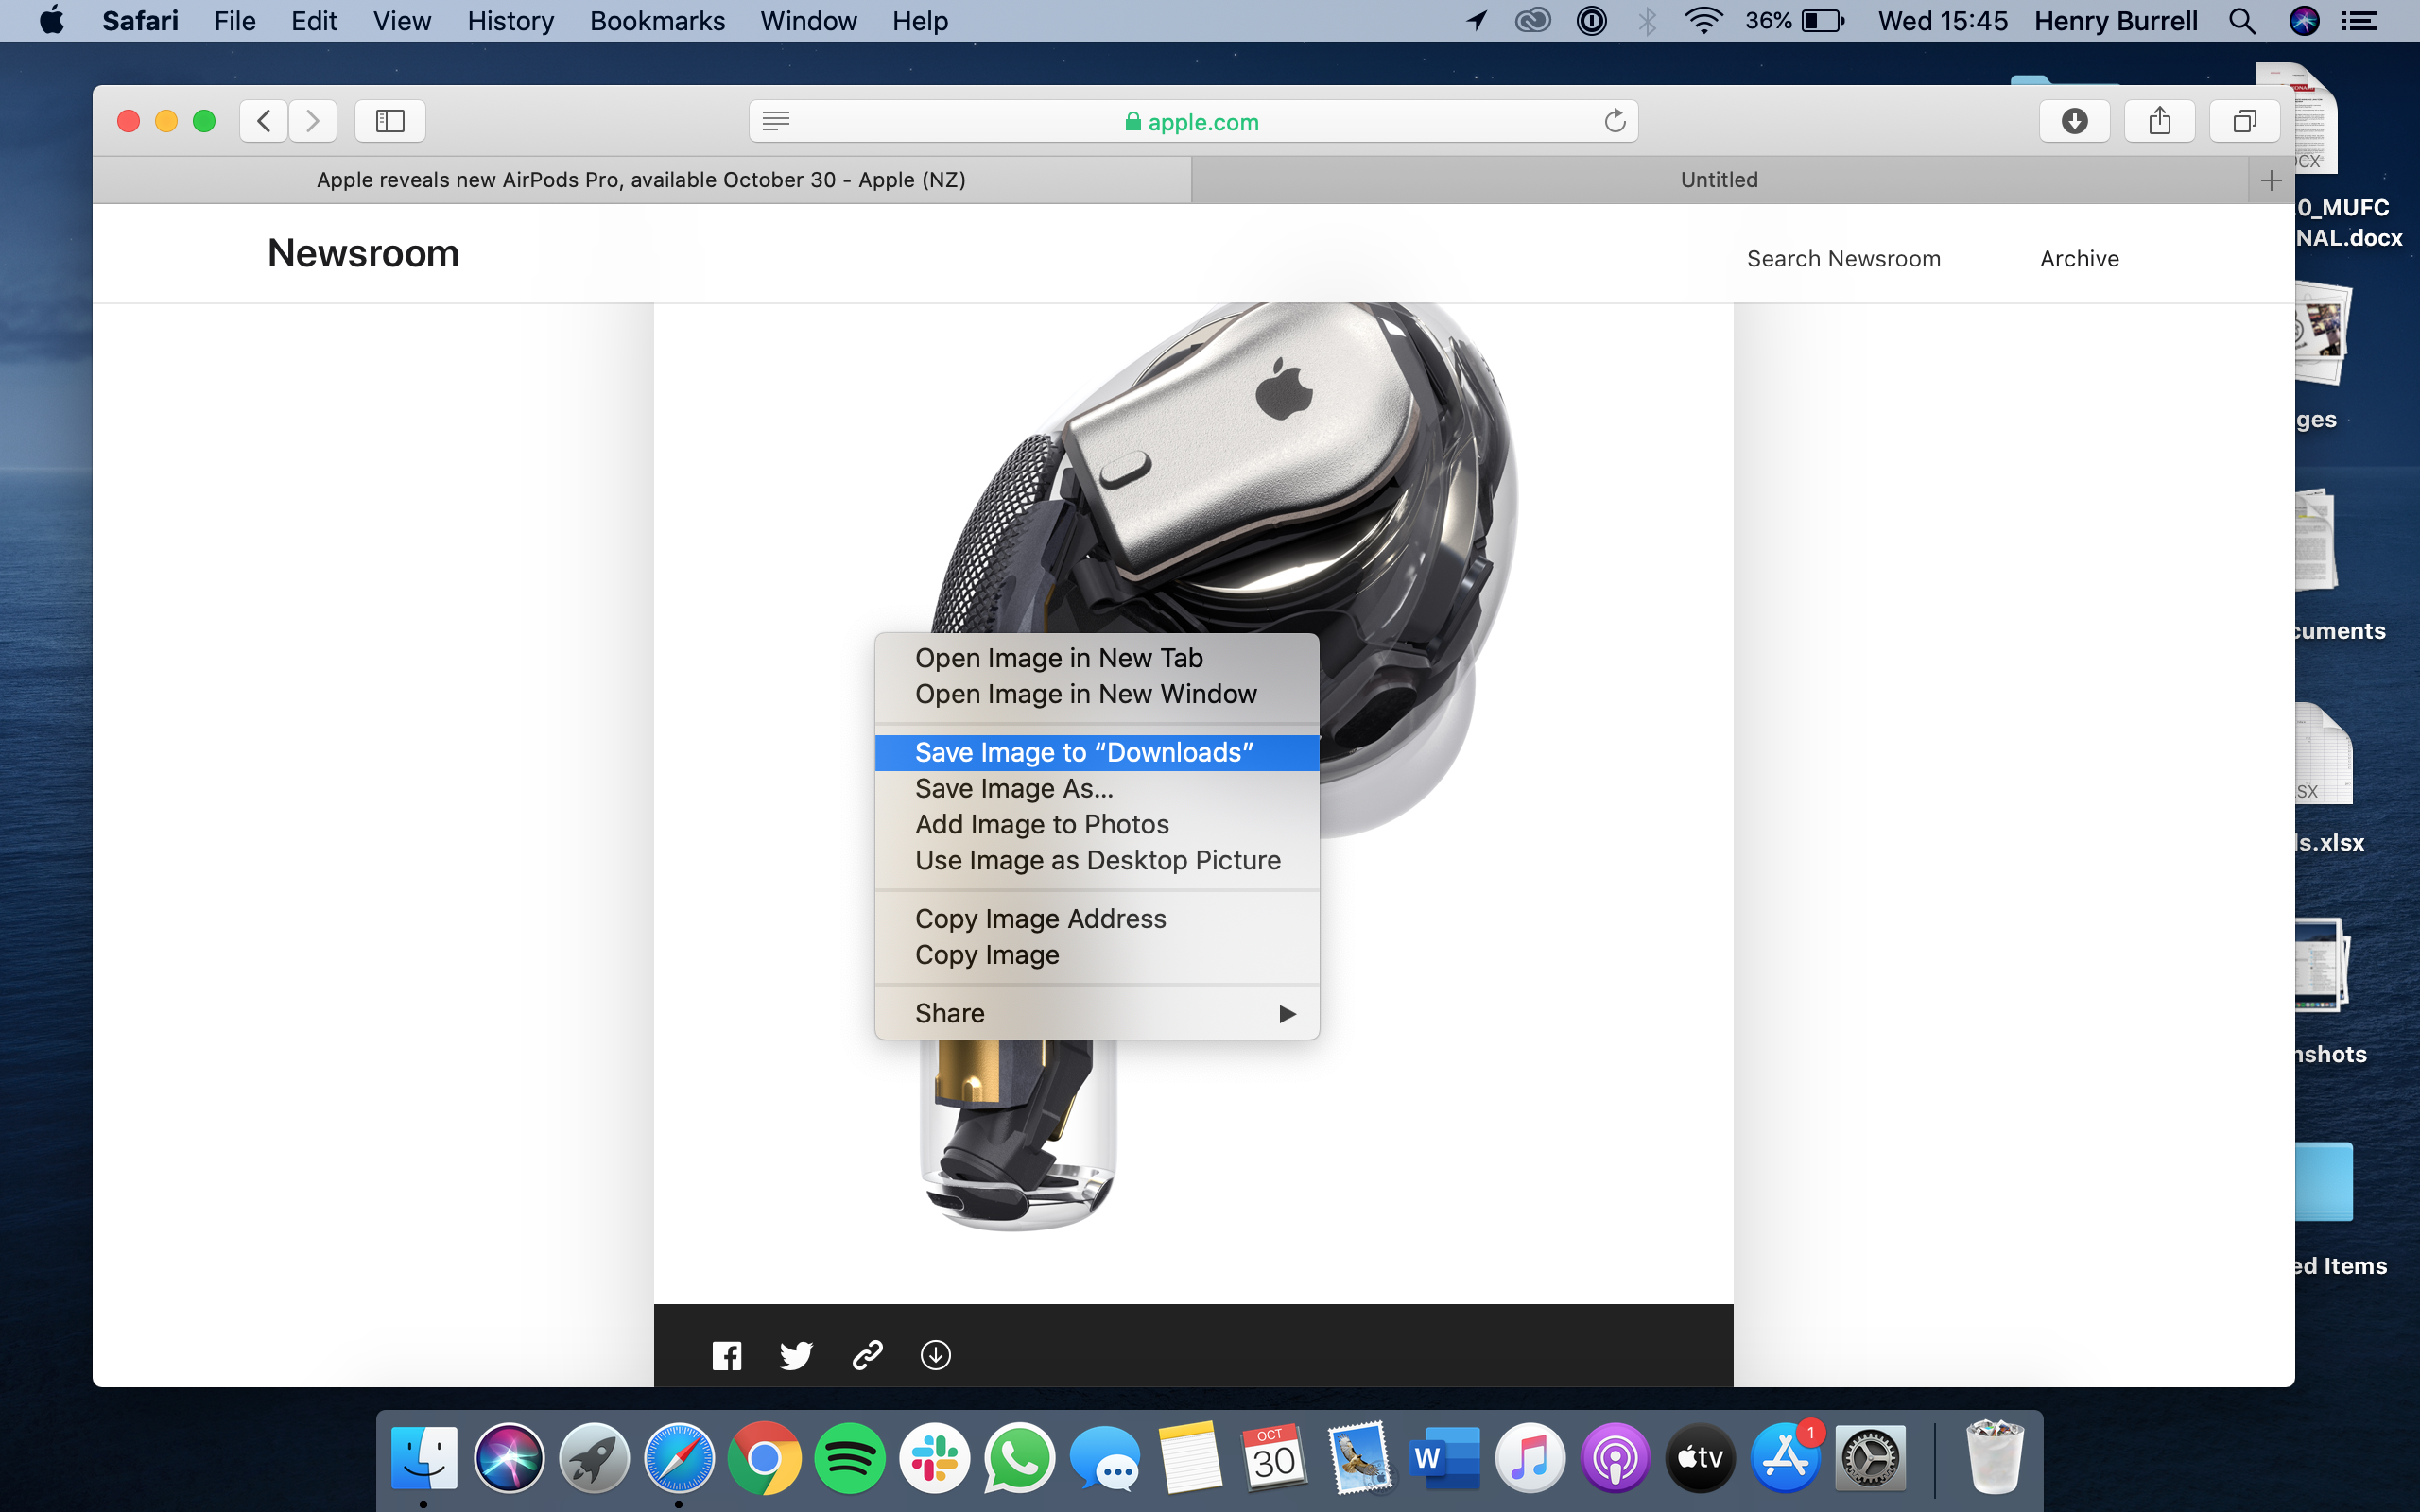 Right click to save the image to Safari on Mac